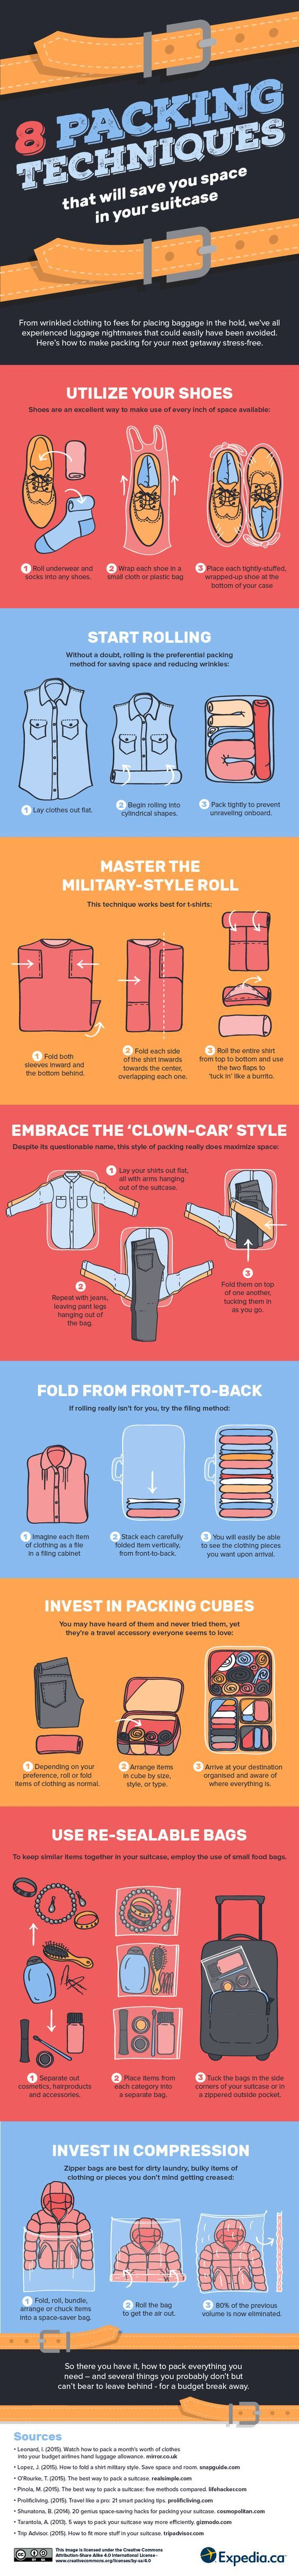 Infographic: 8 packing techniques that will save you space in your suitcase